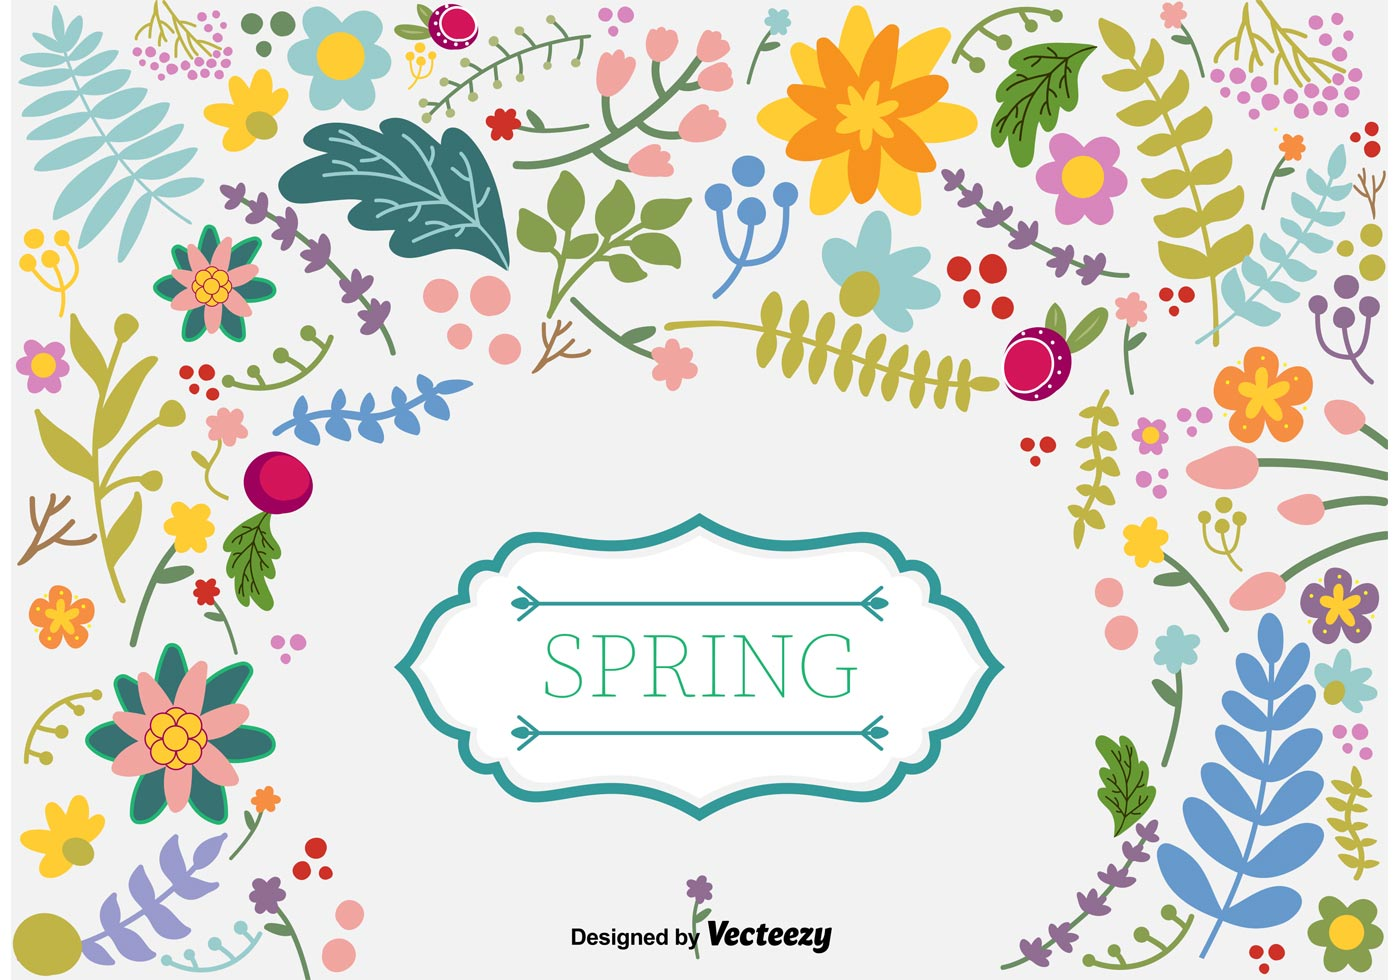 Spring Floral Vector Background Download Free Vectors Clipart